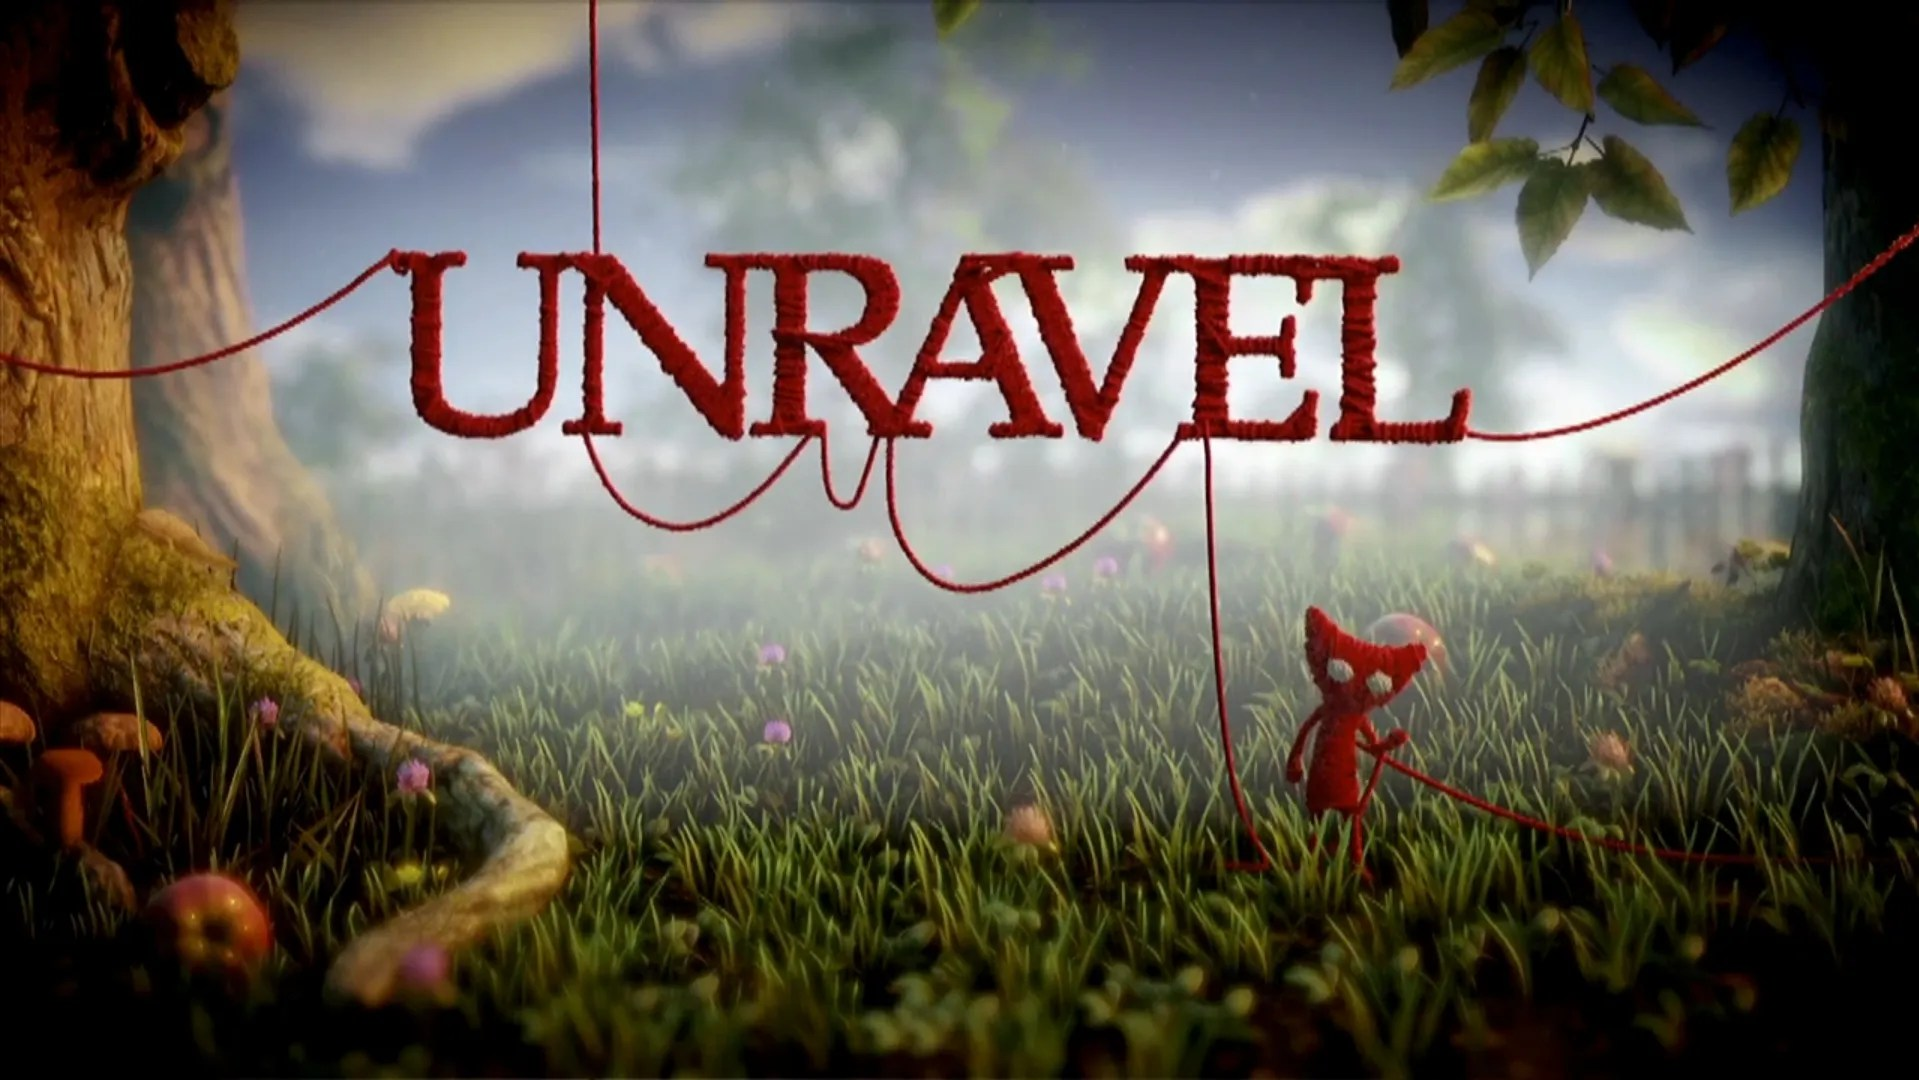 String Quotes Wallpaper Unravel Video Game Tv Tropes